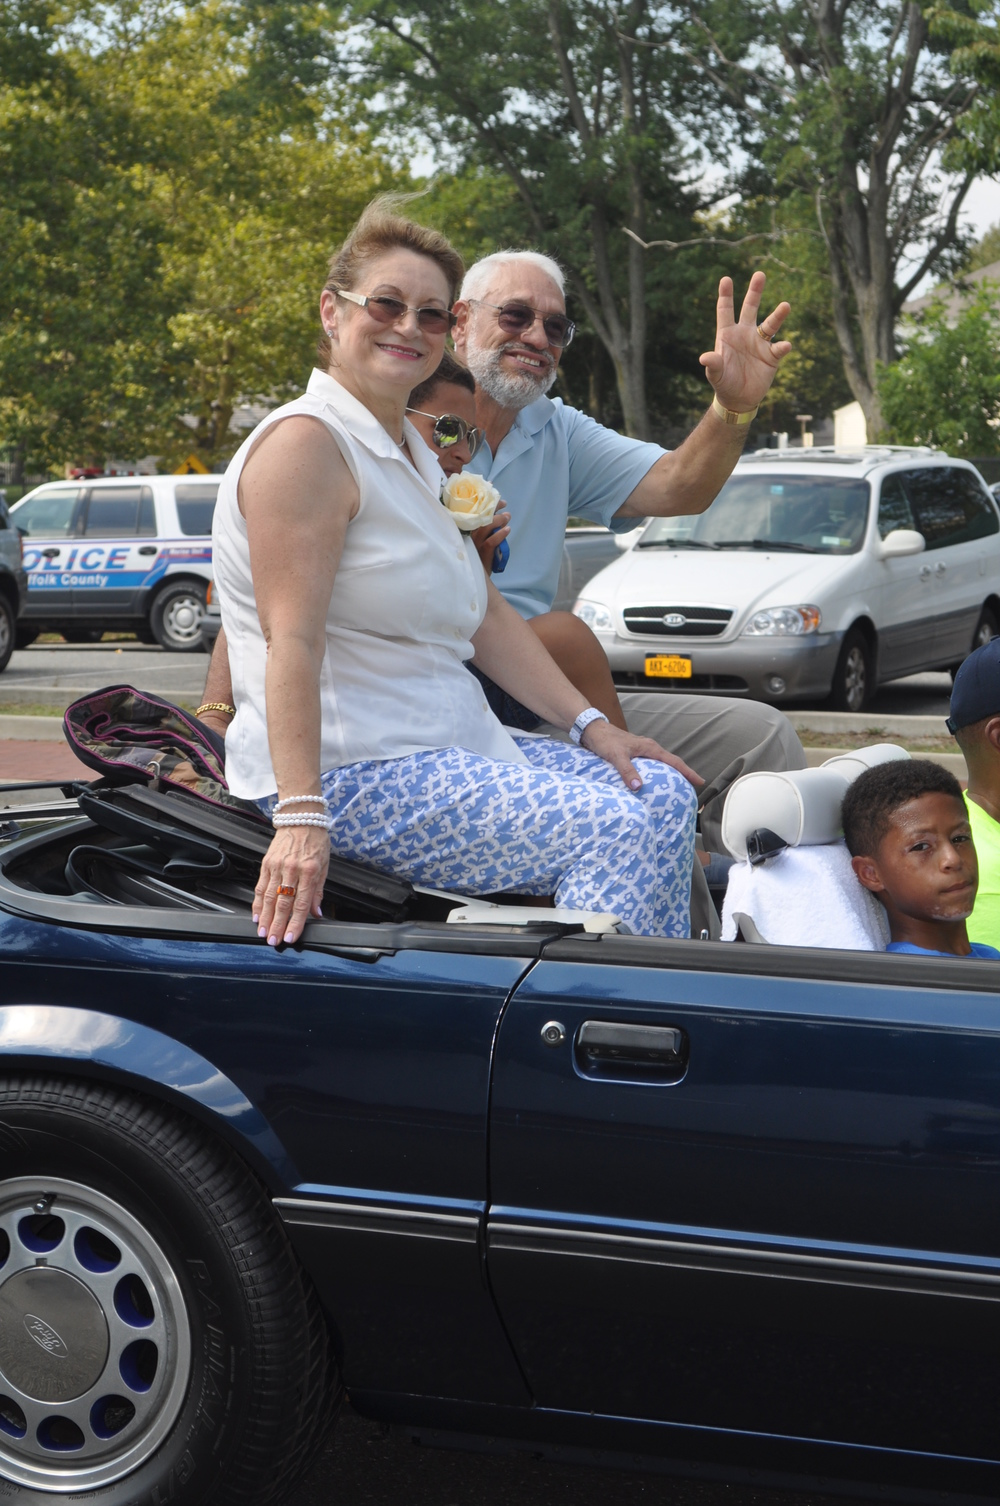 Algieri's parents, Adriana and Dominick Algieri, are all smiles atop a Mustang convertible.